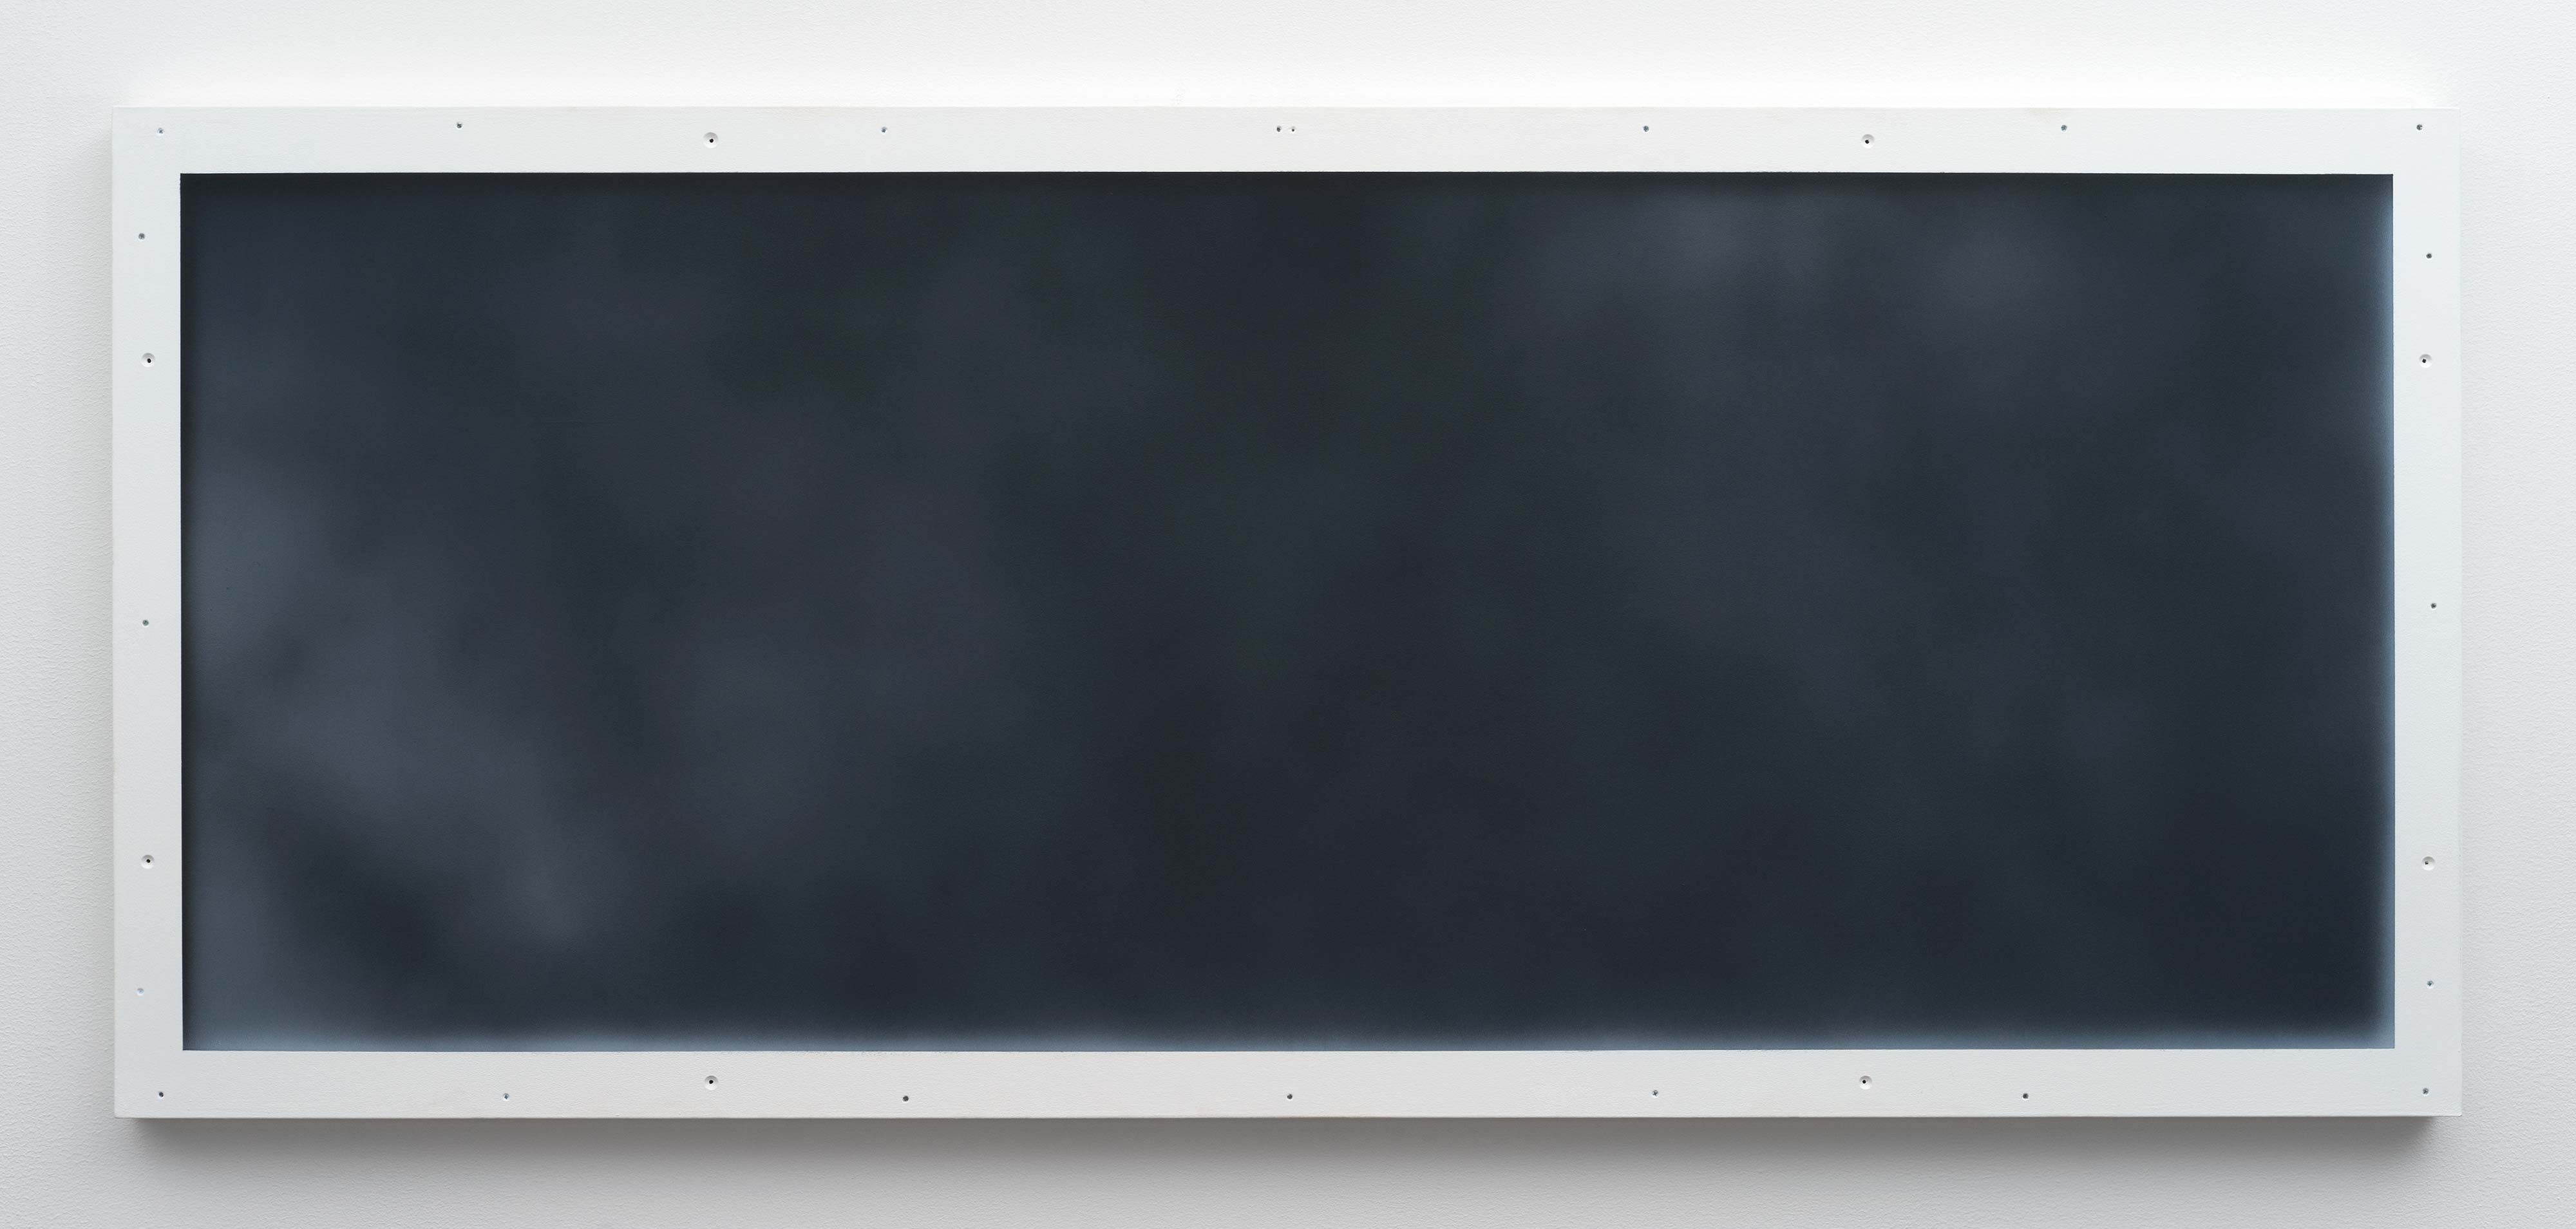 Christopher Page<br>Noctunre (IX)<br>2016<br>oil and acrylic on panel<br>23.6 x 54.3 in (60 x 138 cm)